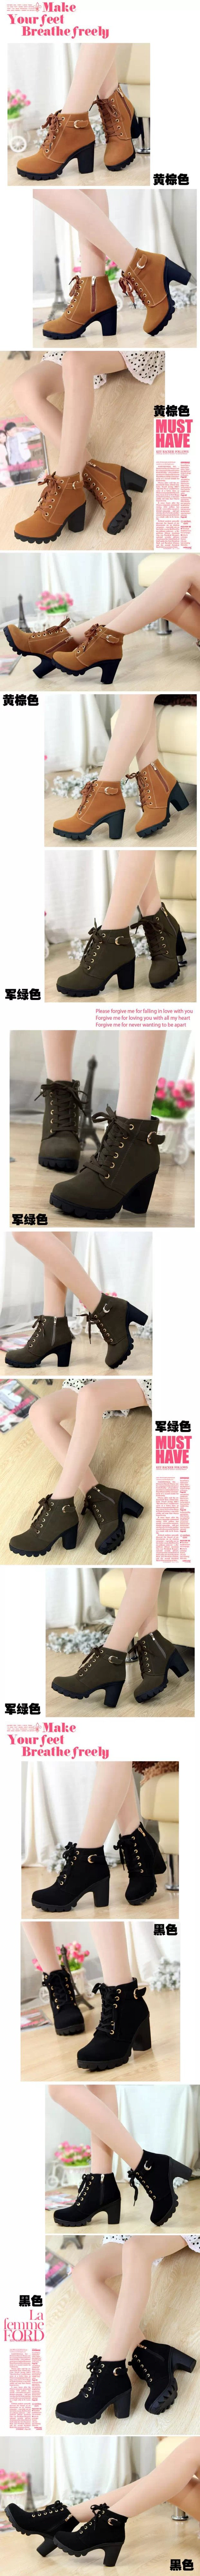 Woman Boots Women Shoes Ladies Thick Fur Ankle Boots Women High Heel Platform Rubber Shoes Snow Boots jmi8 21